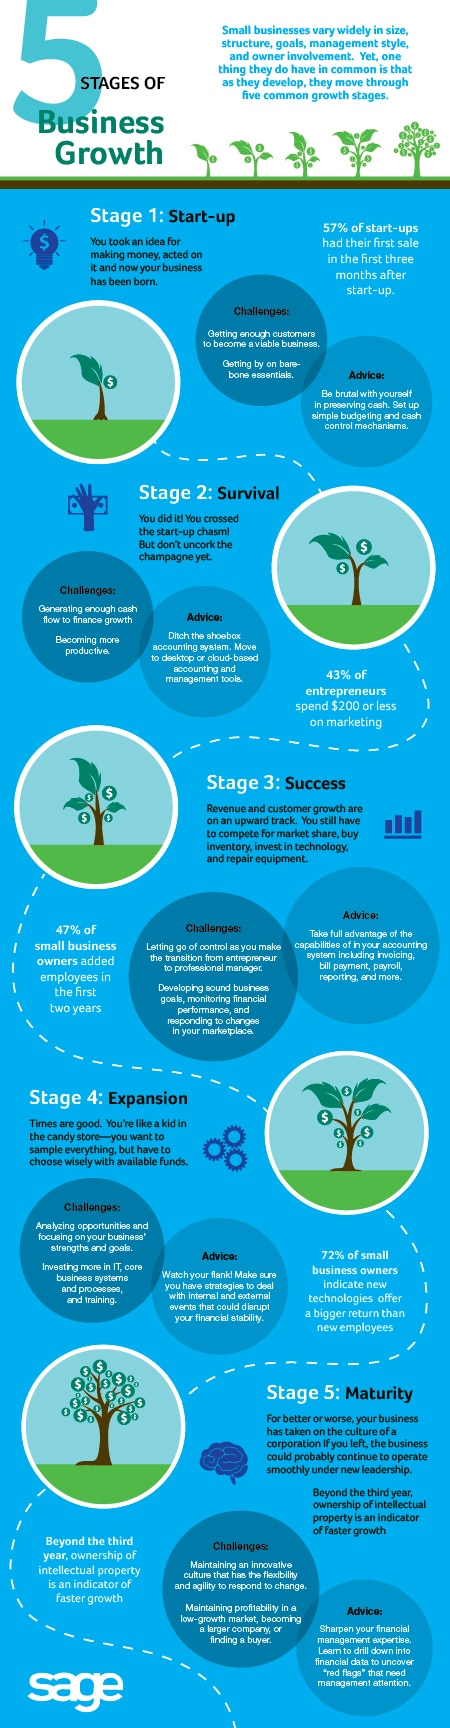 Sage_5Stages_Infographic_final